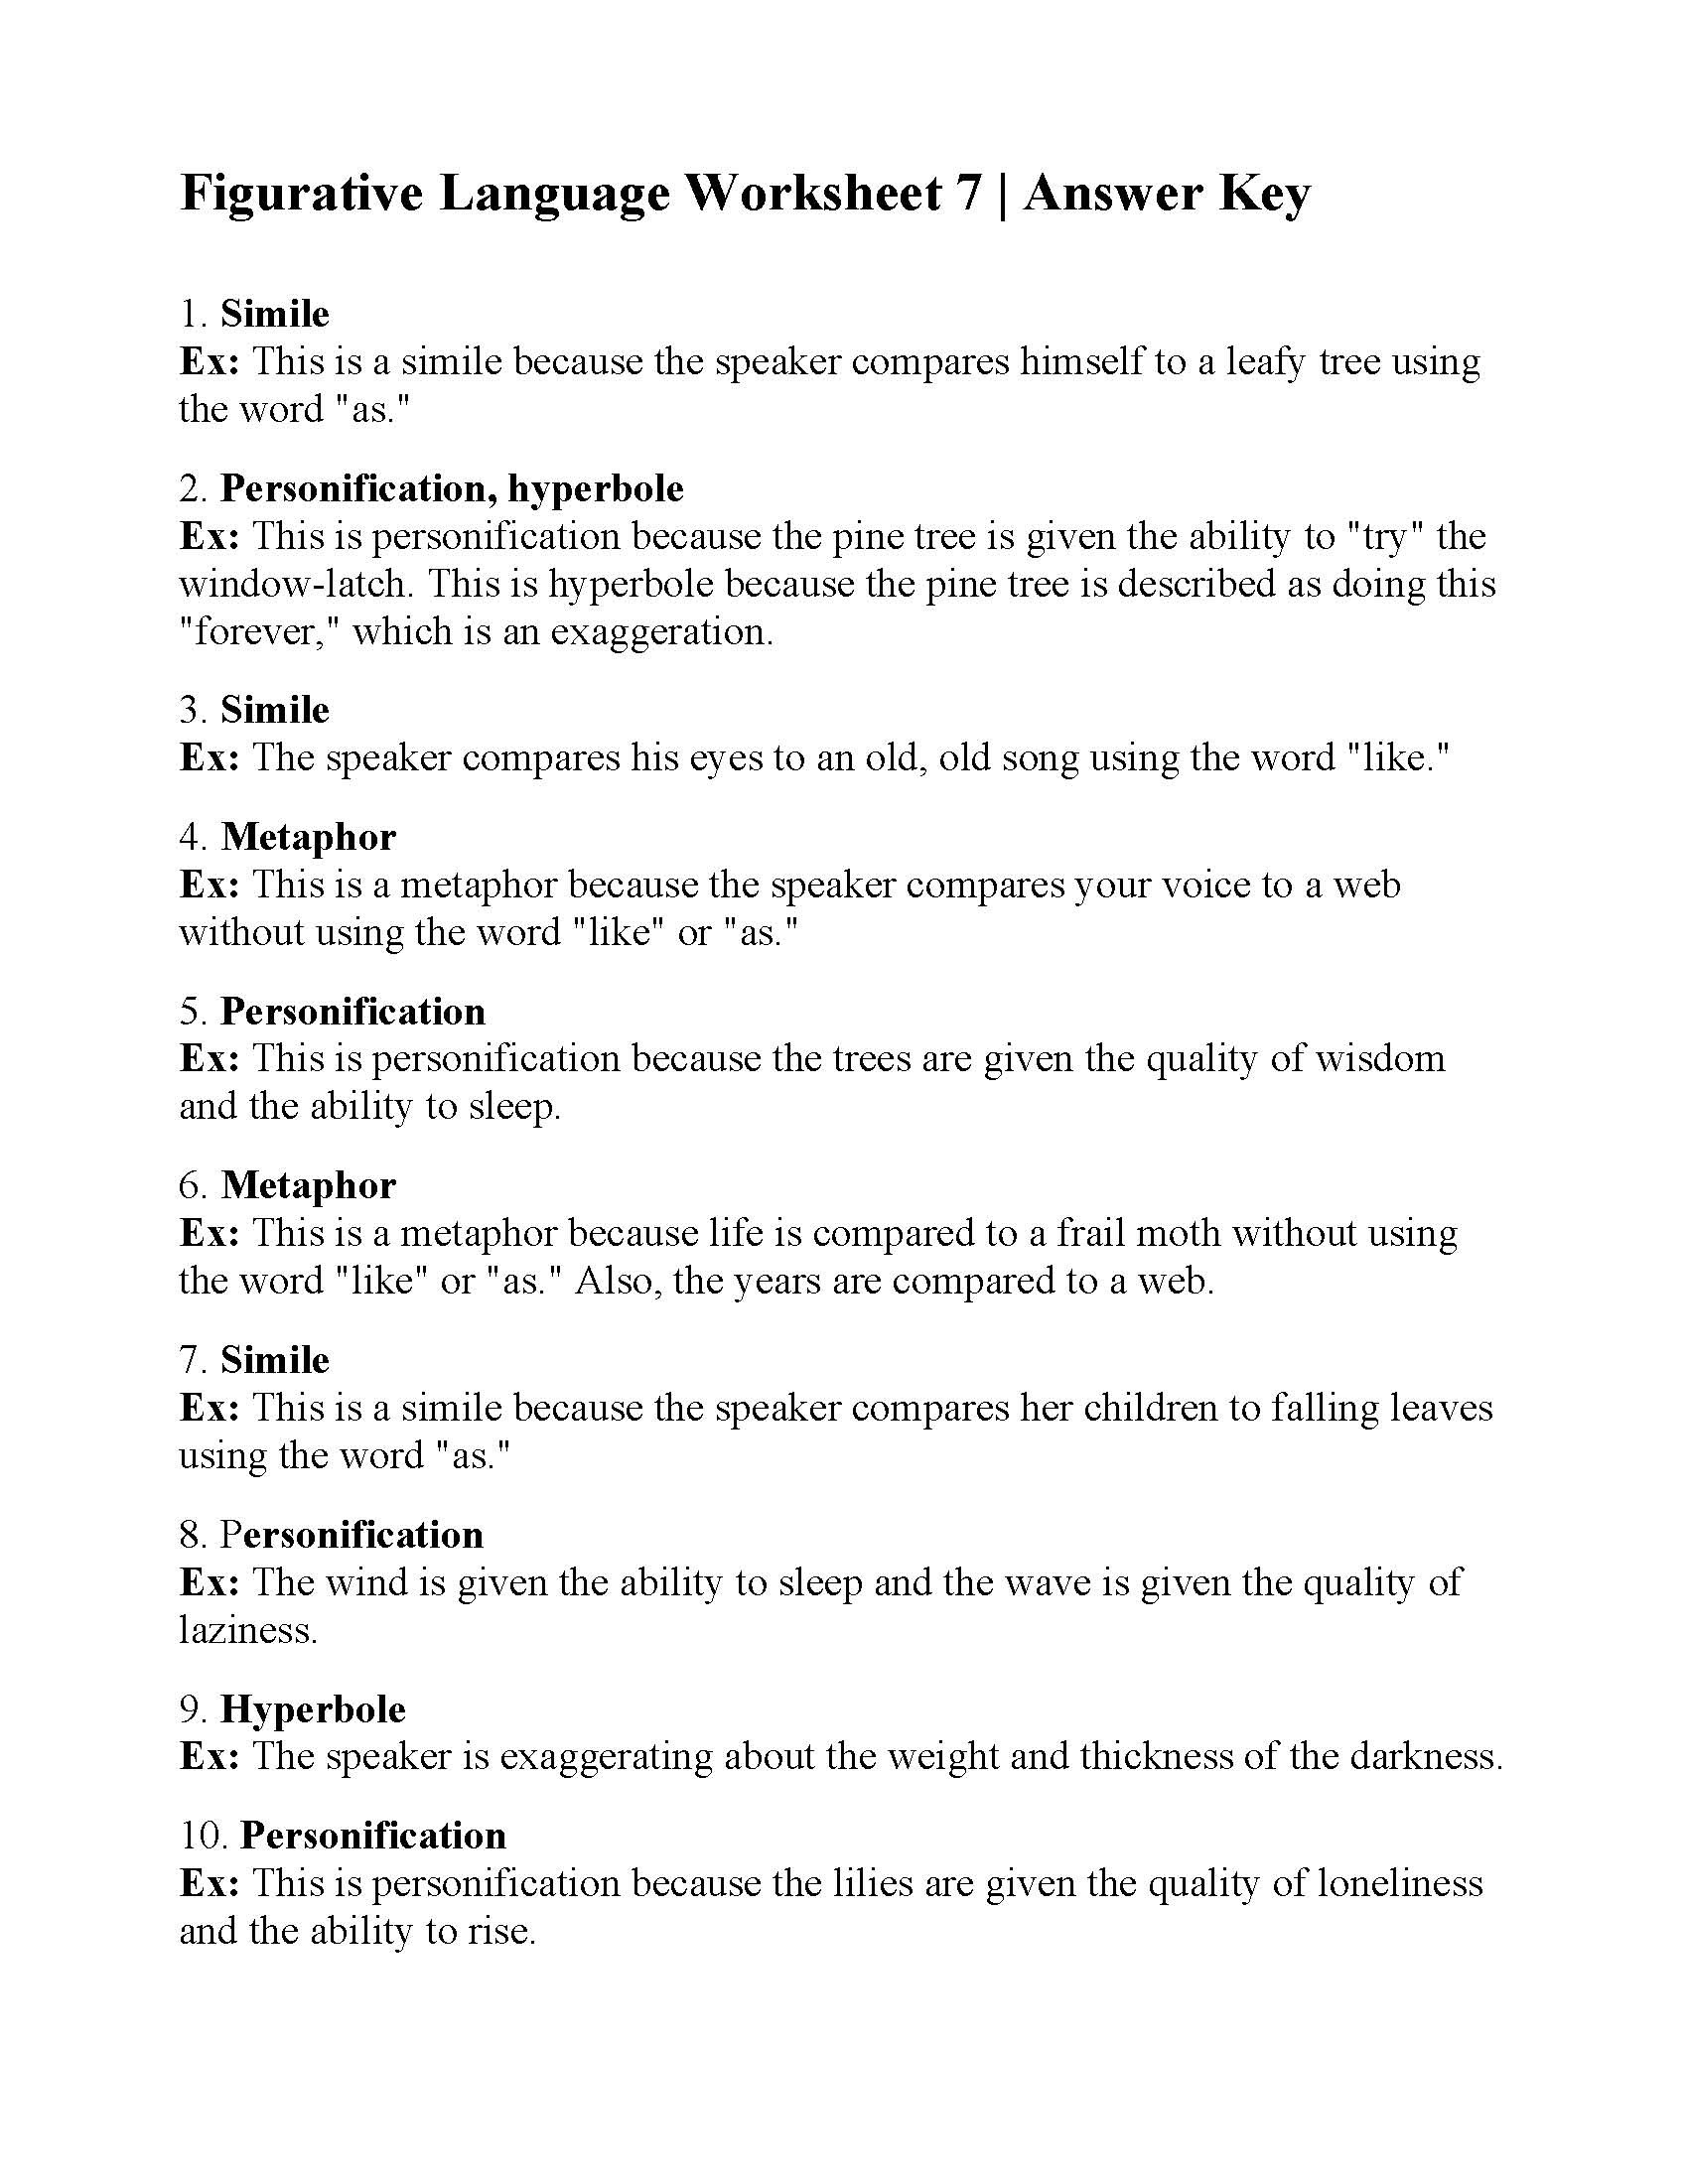 Personification Worksheets for Middle School Mon Core Multiplication Facts Worksheets 0 9 Free Math